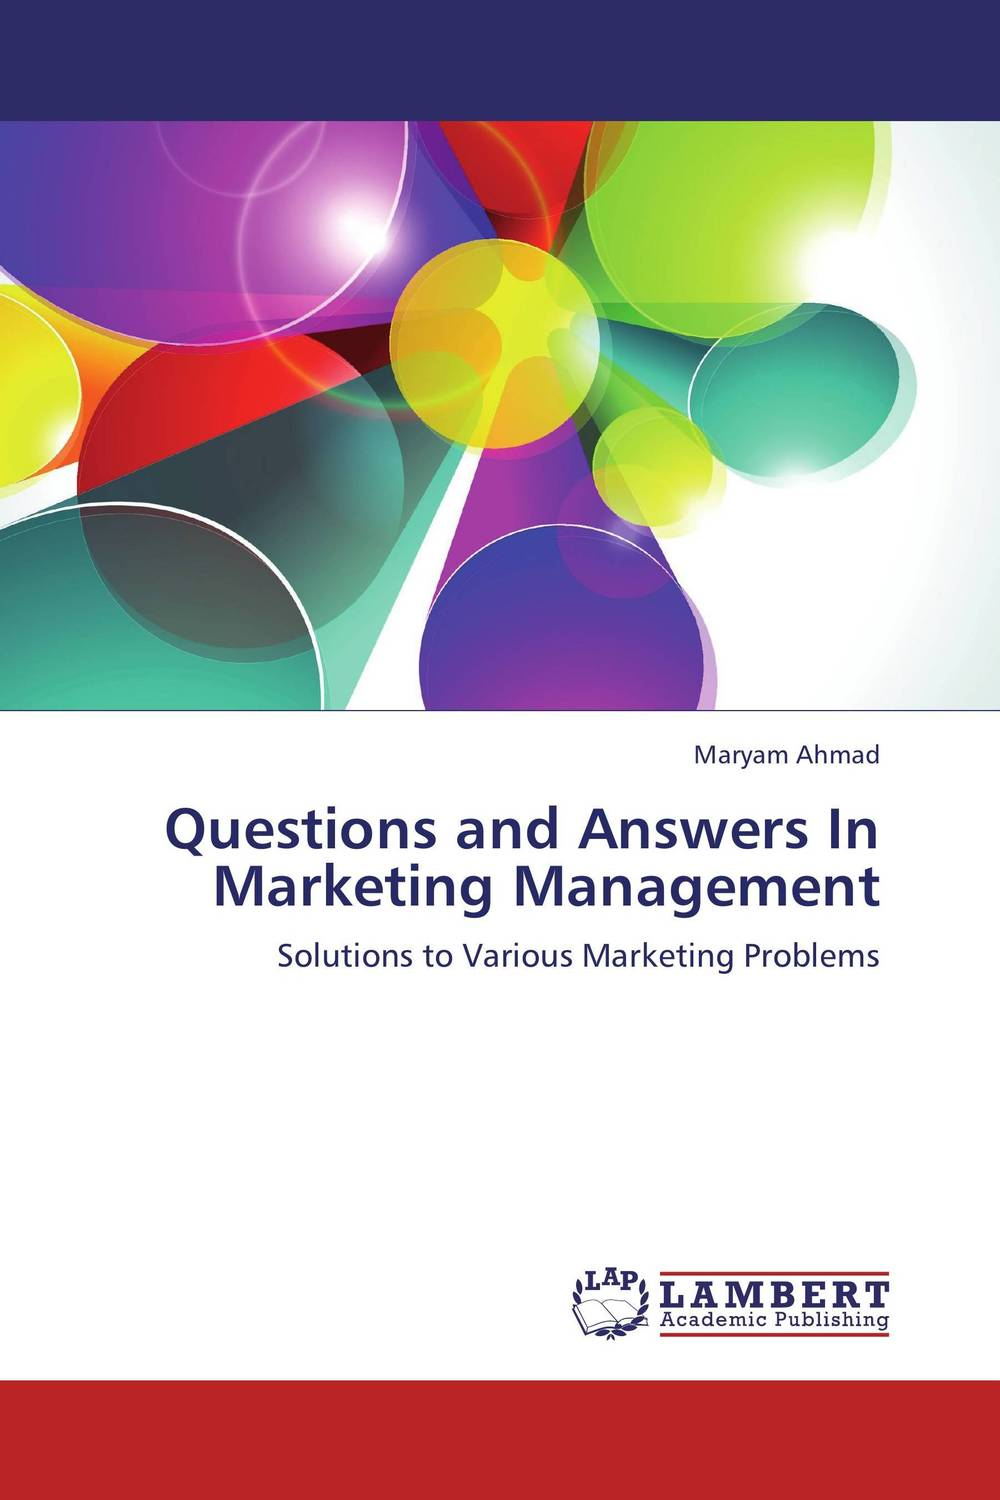 Questions and Answers In Marketing Management м н милеева chemistry in questions and tests учебное пособие